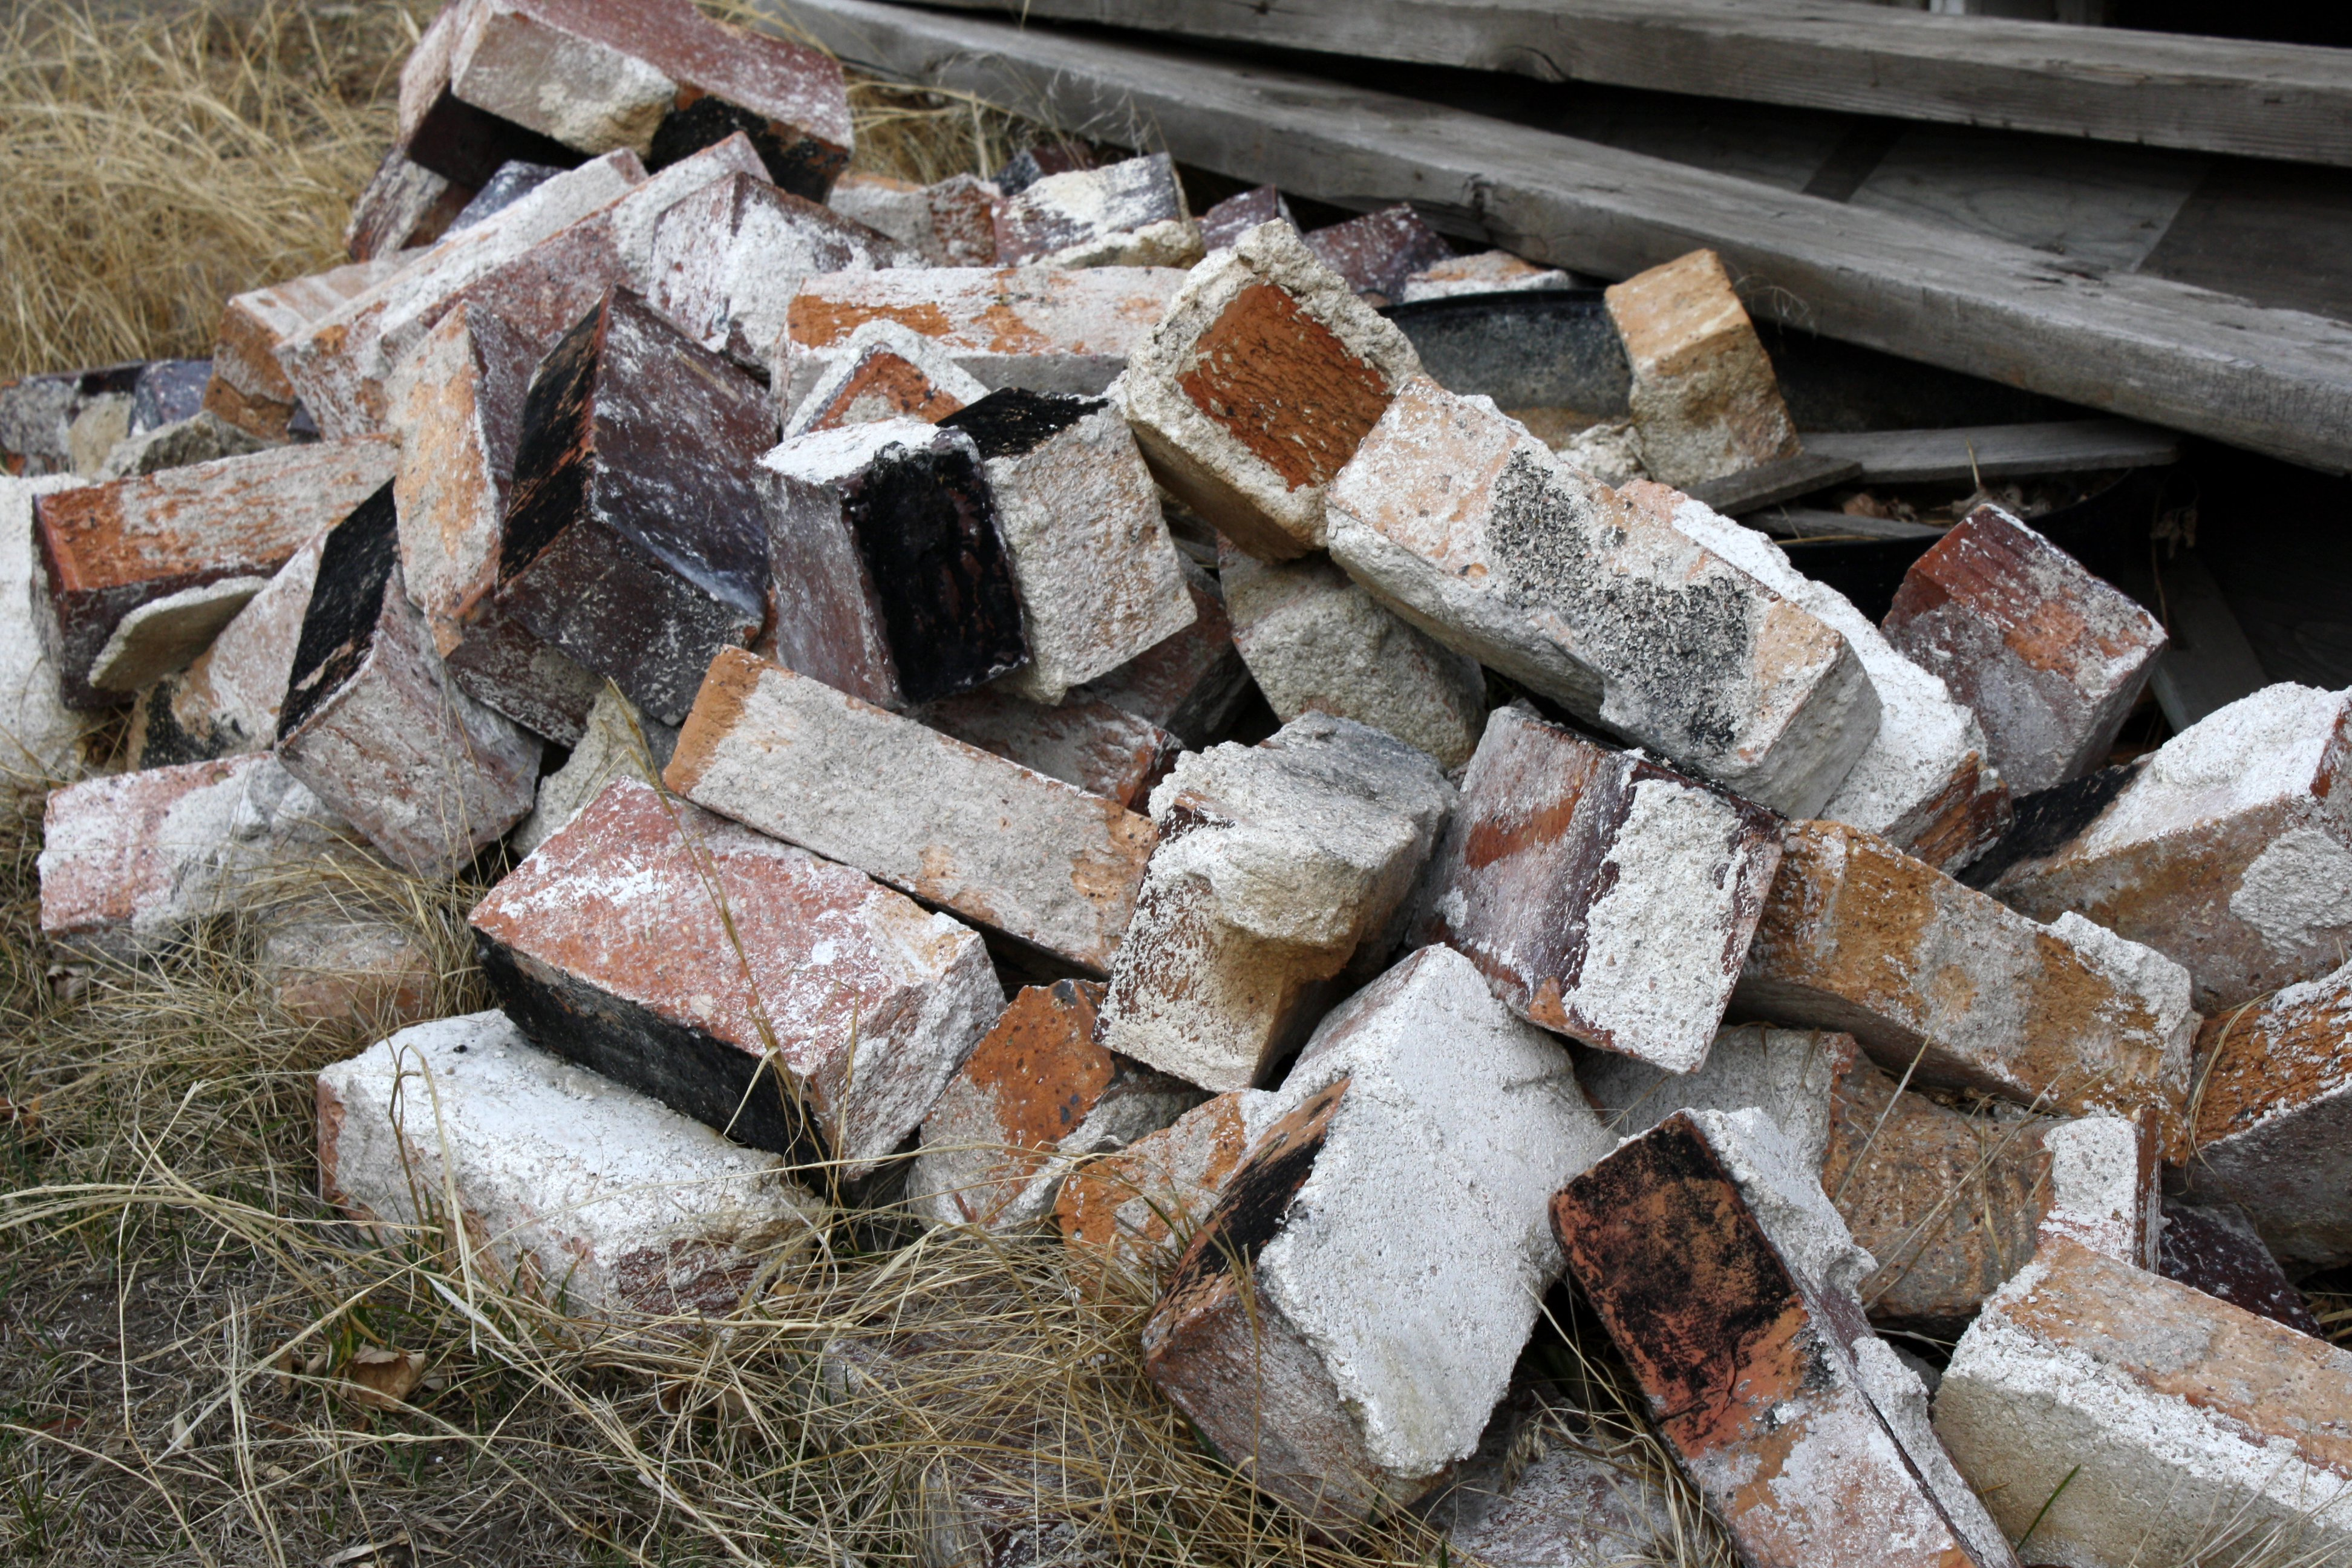 Pile of Old Bricks Picture | Free Photograph | Photos ...